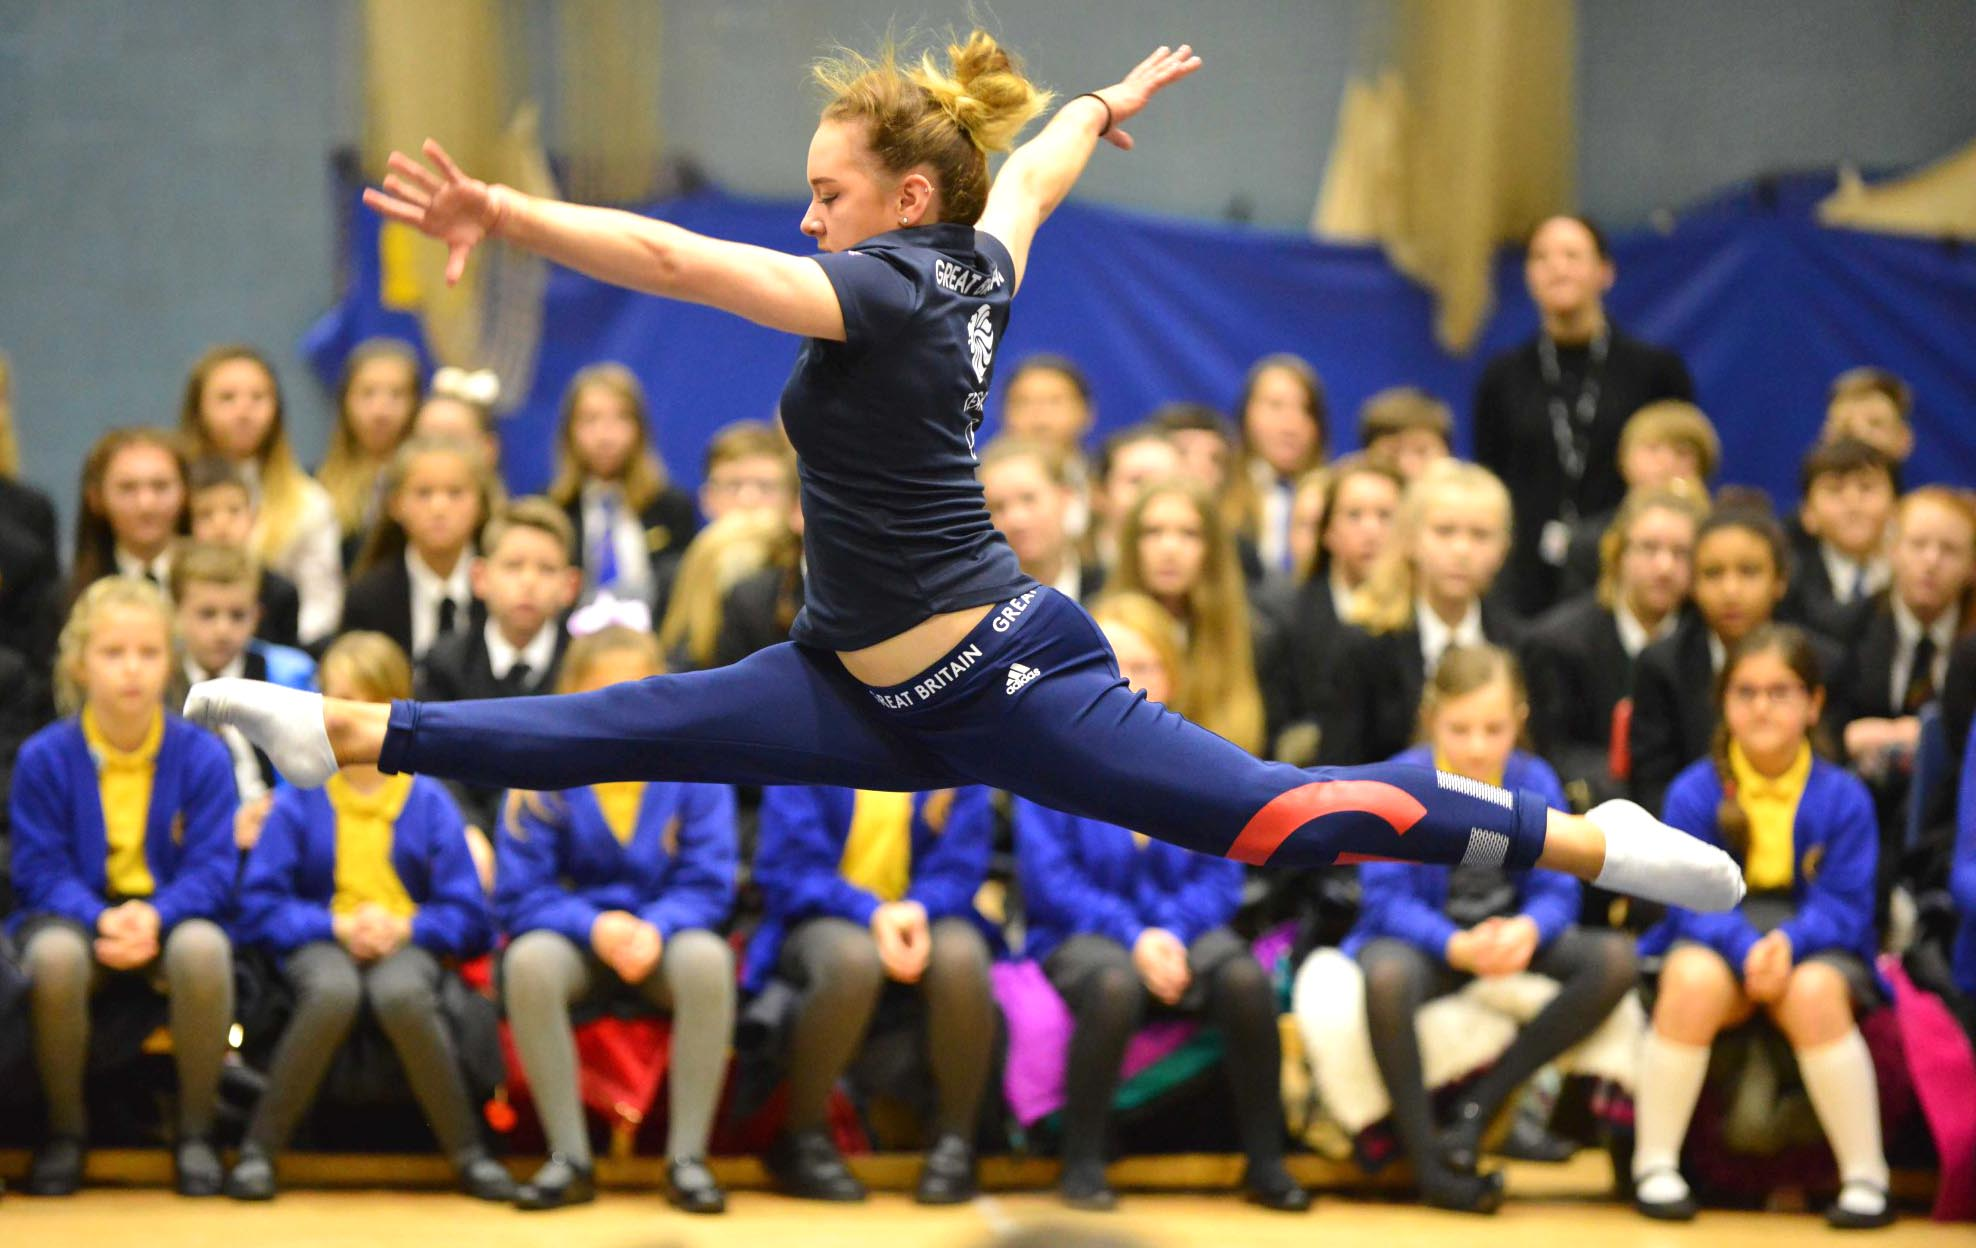 Aycliffe Students Hear the Amy Tinkler Story